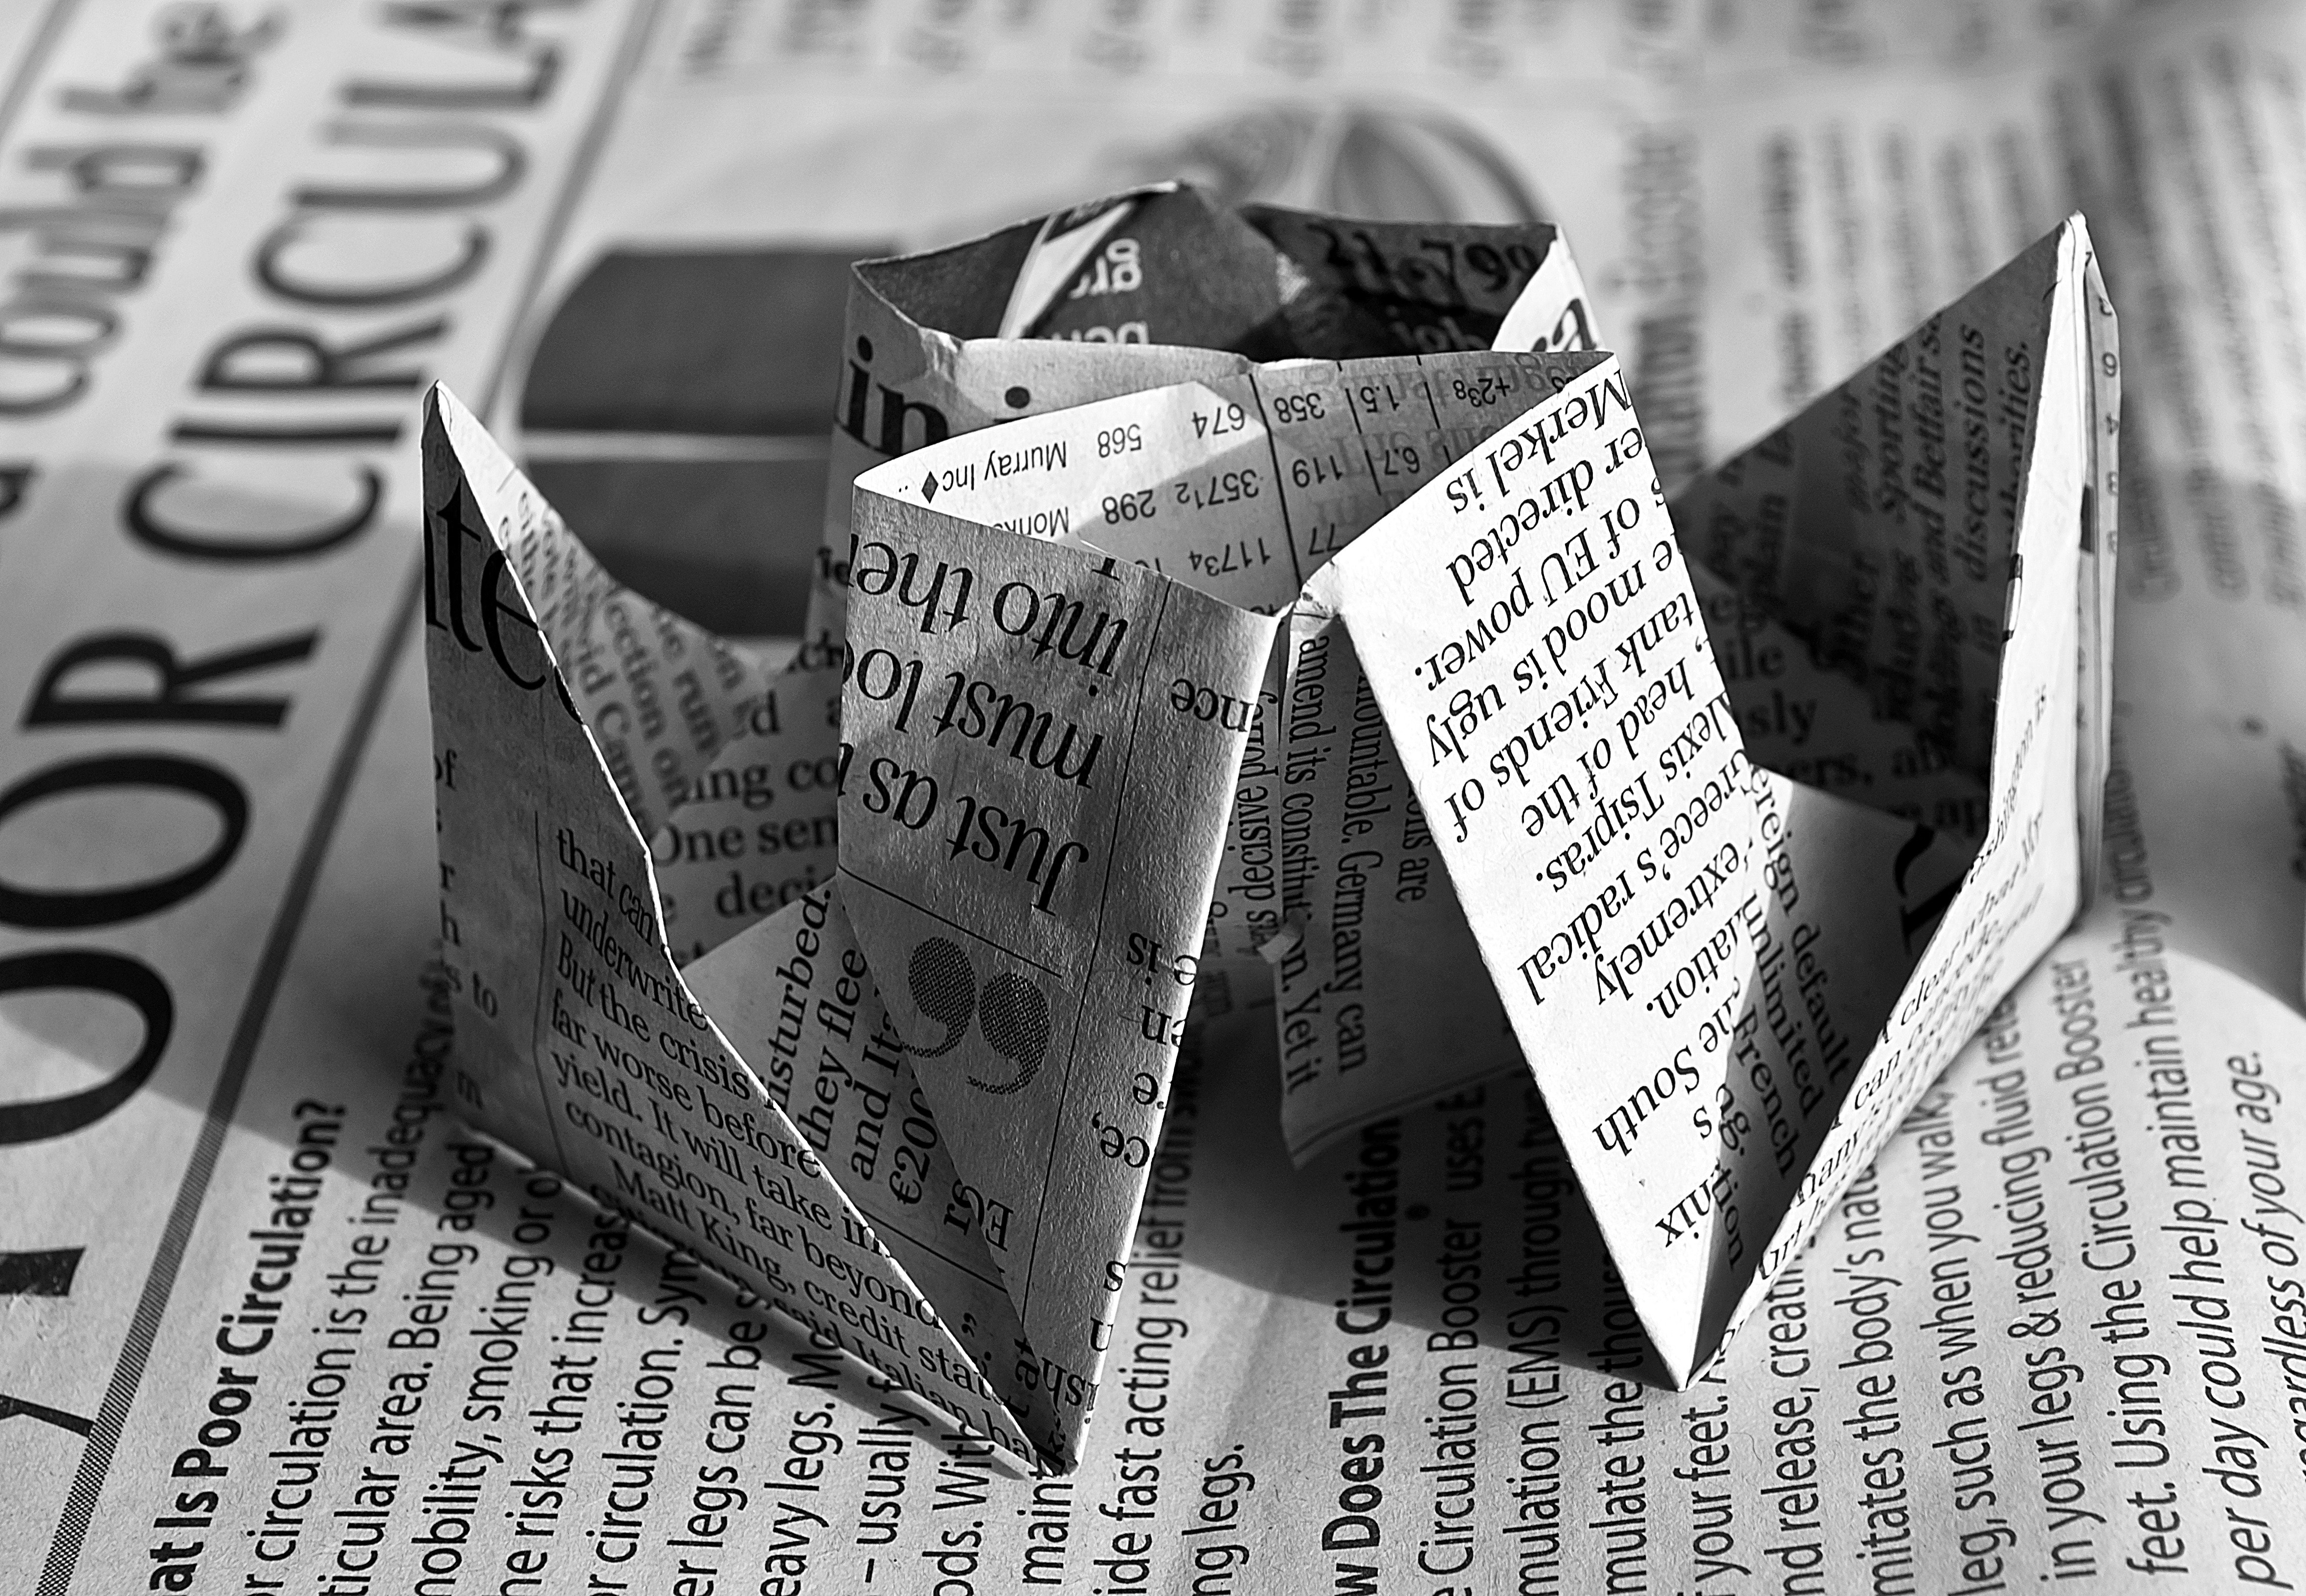 Newspaper Origami by Public Domain Pictures (used under CC BY-NC 2.0)